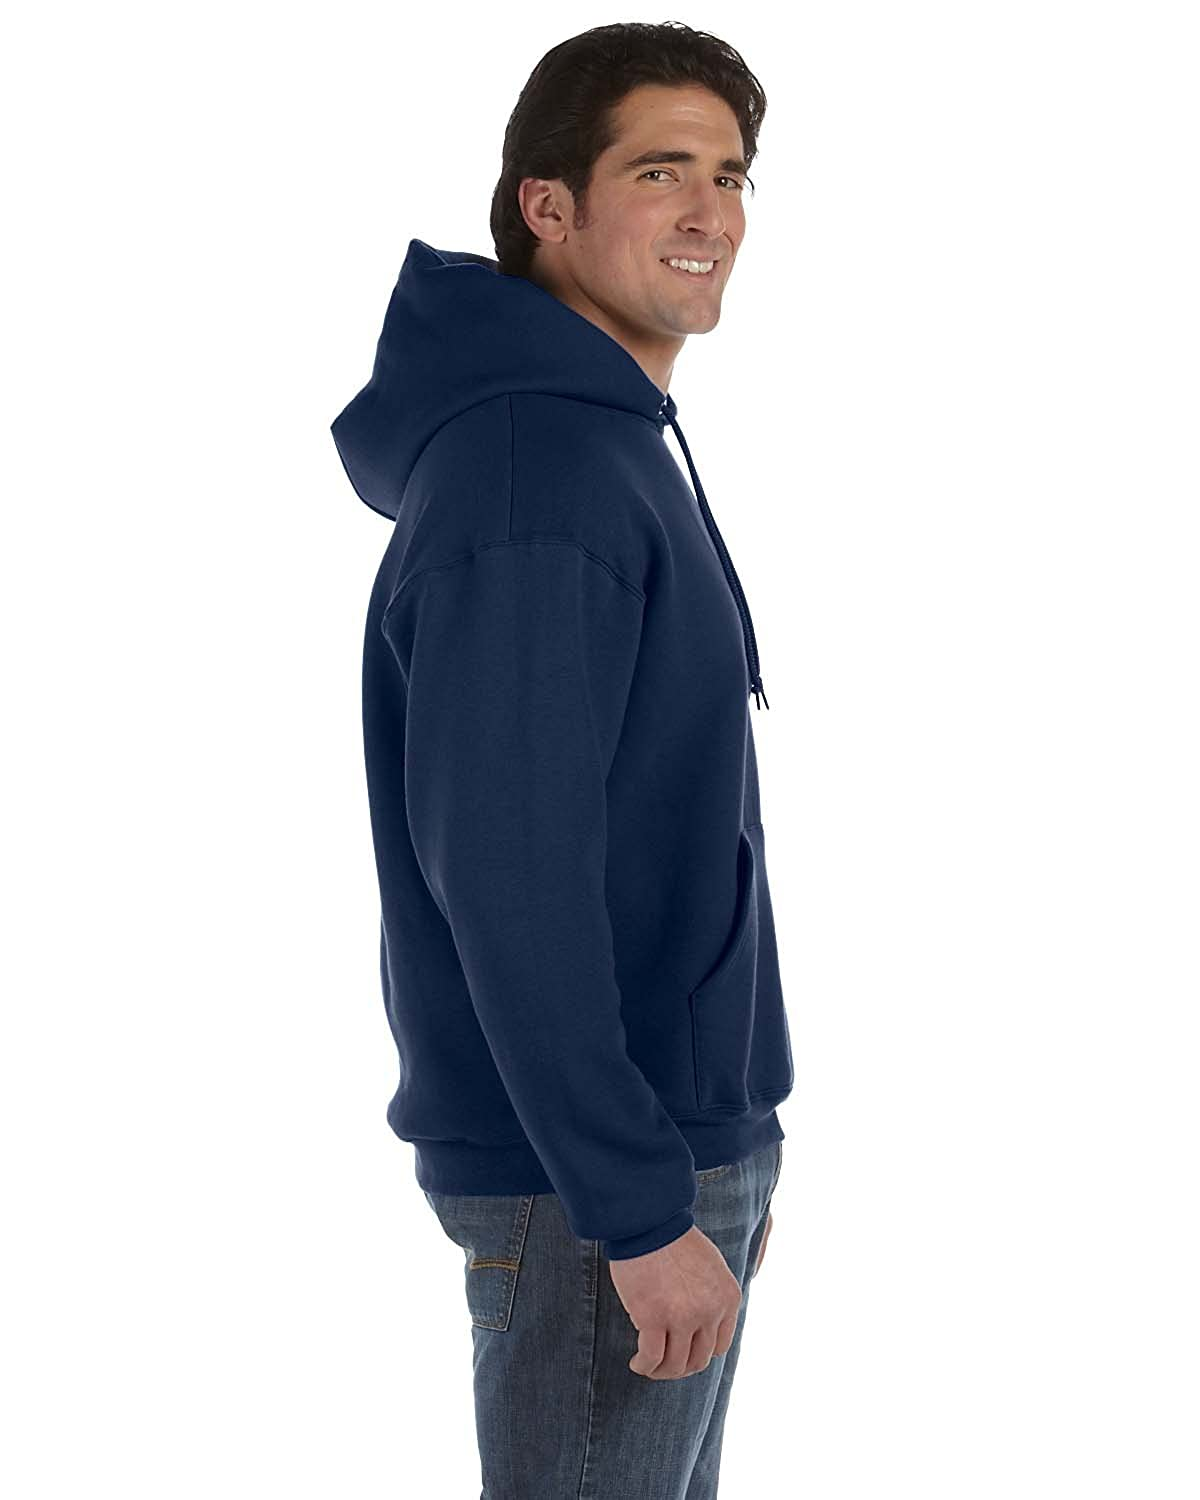 Supercotton 70//30 Pullover Hood Fruit of the Loom 12 oz